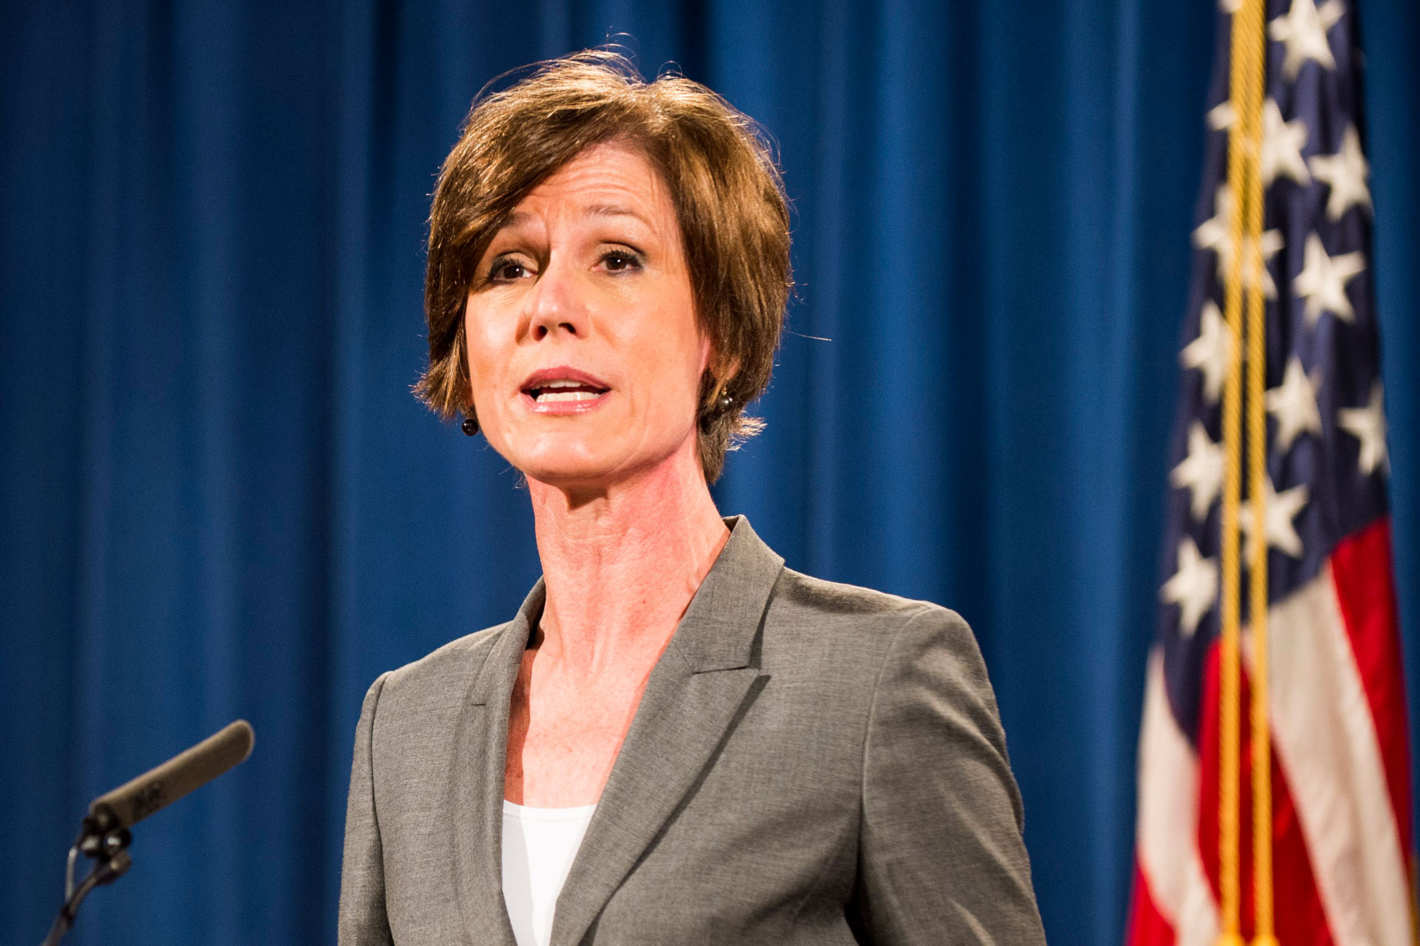 Image result for sally Yates, photos